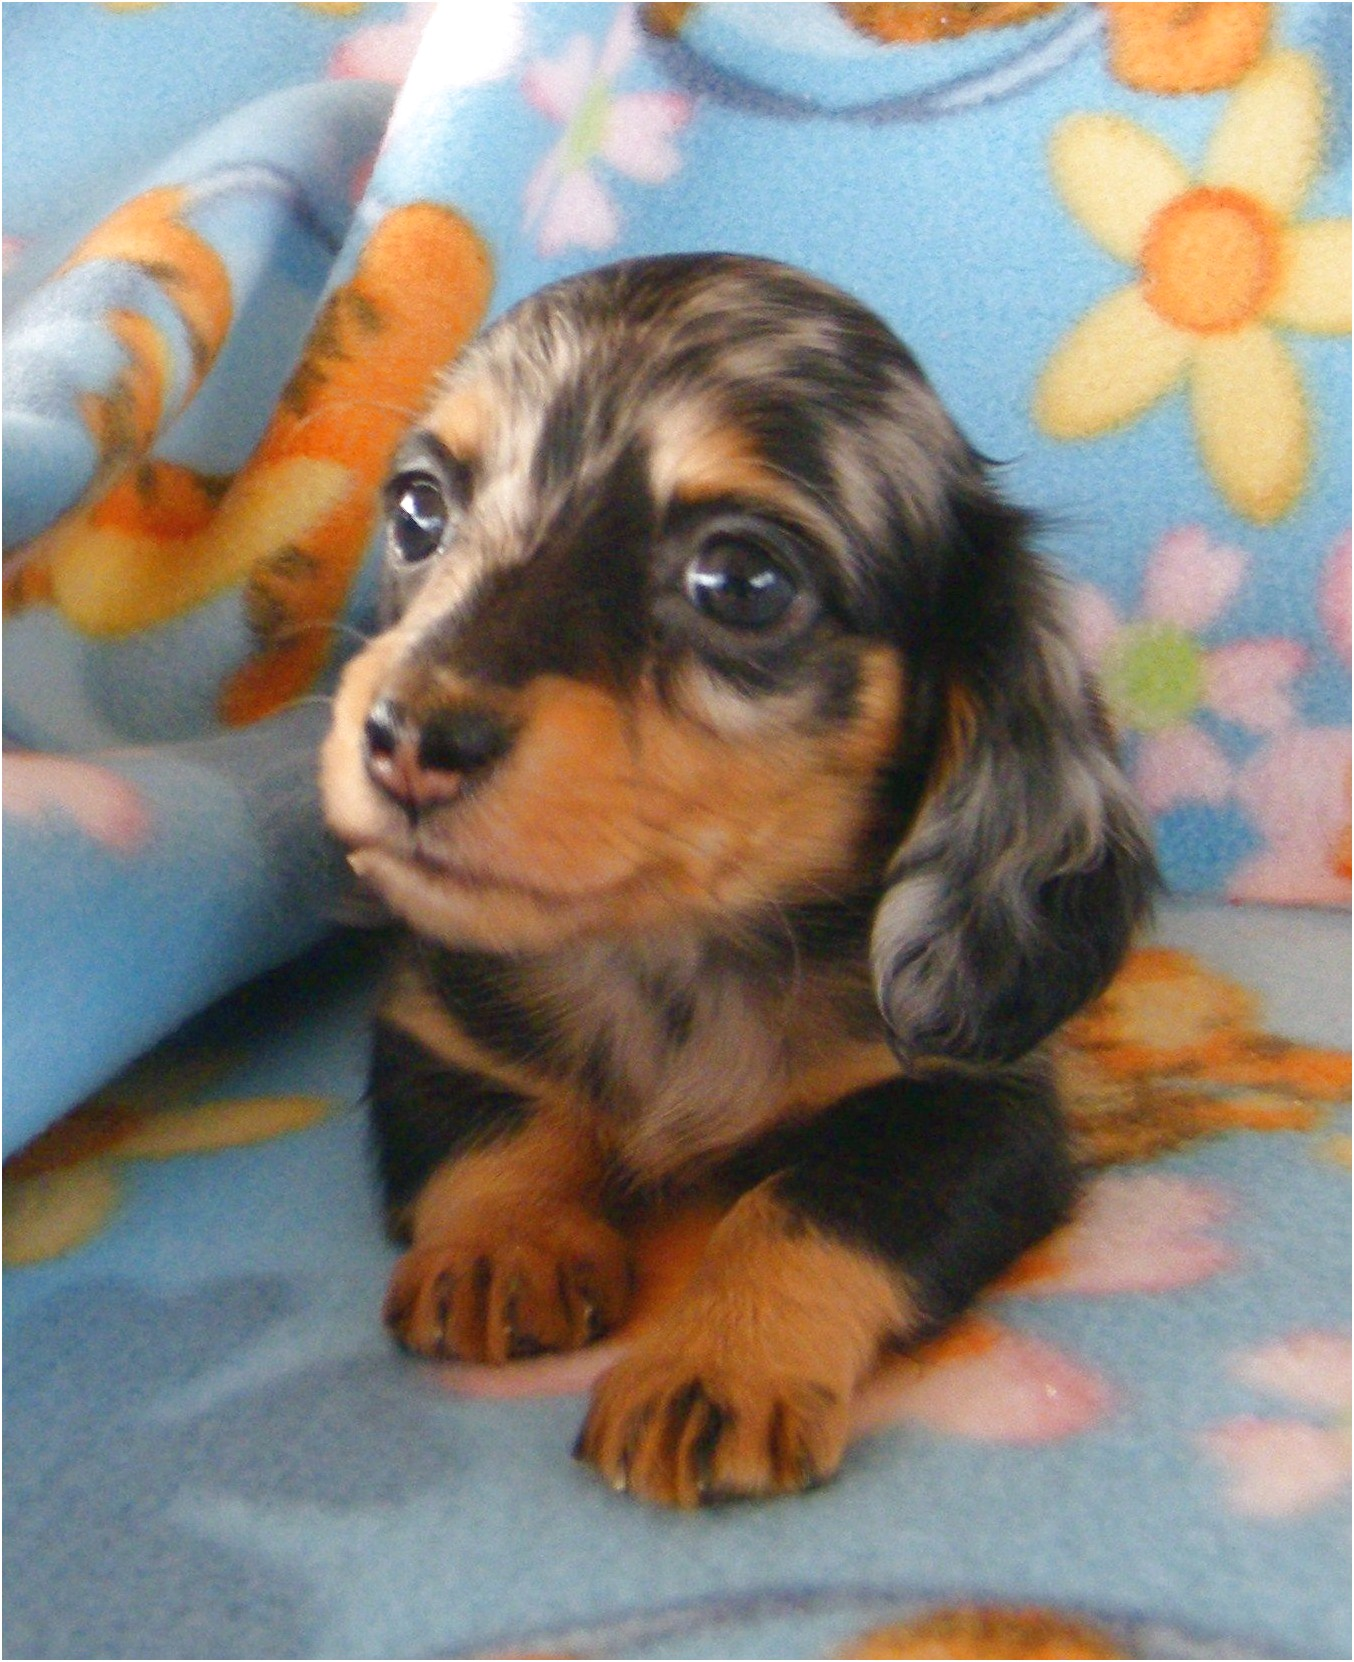 Teacup Dachshund Puppies For Sale